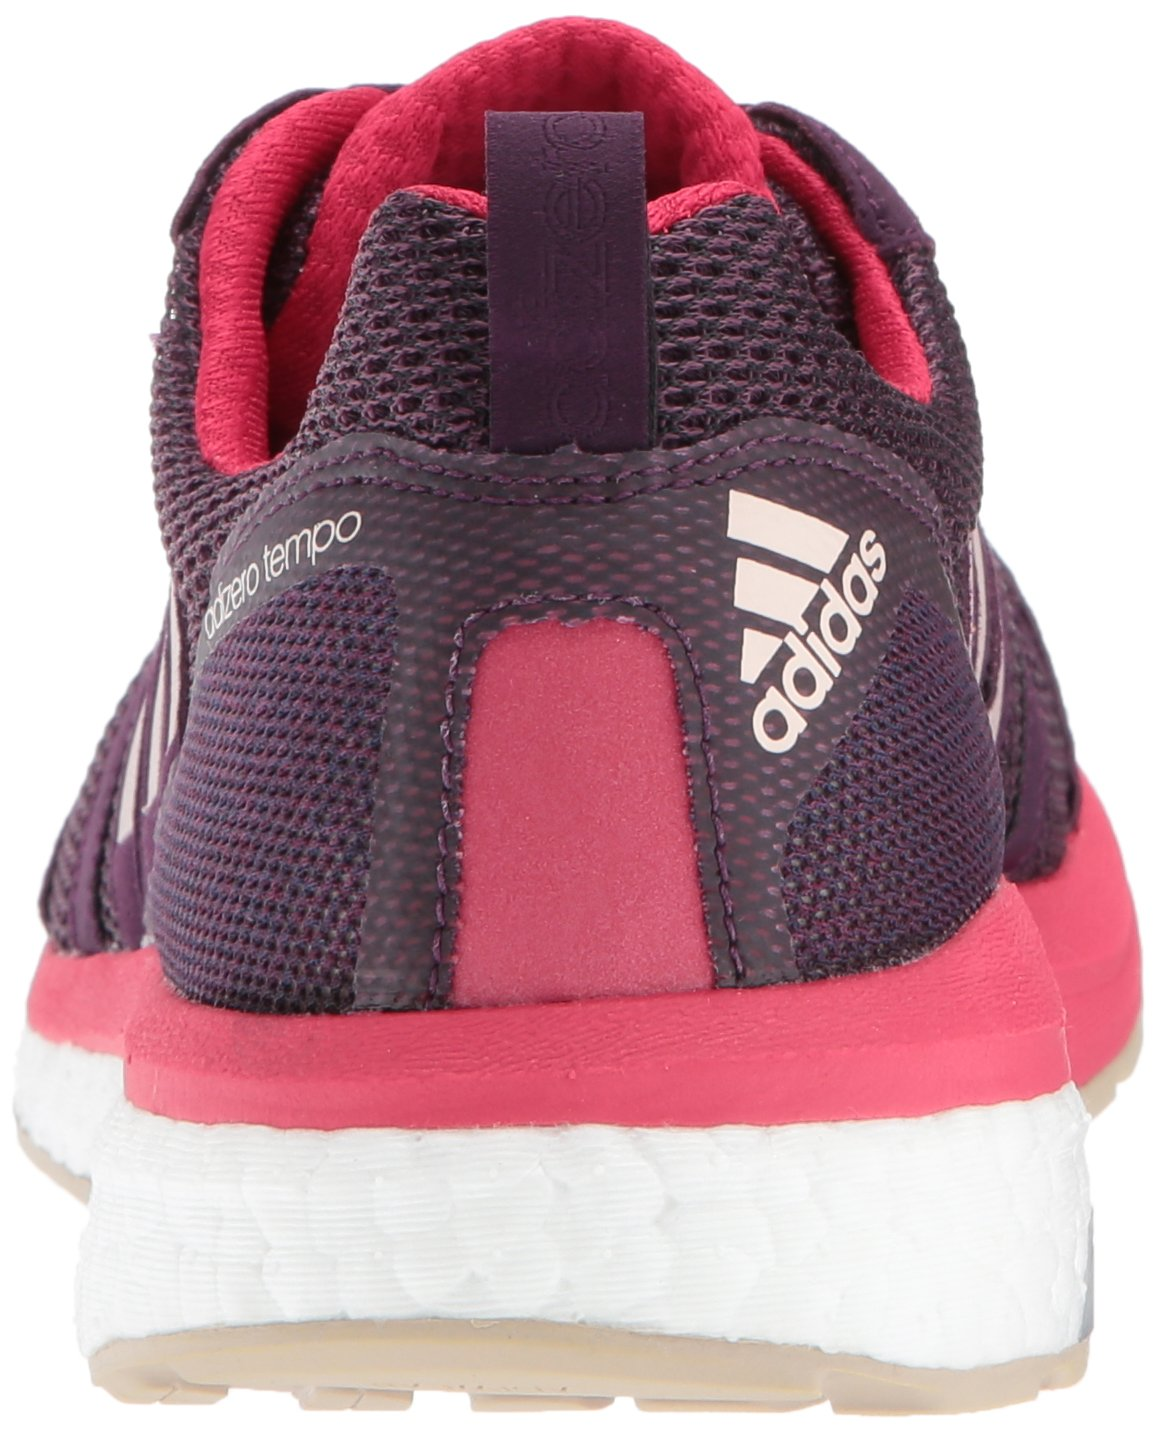 adidas Women's Adizero Tempo 9 W B01MZ20W2M 6 B(M) US|Red Night/Ice Pink/Energy Pink